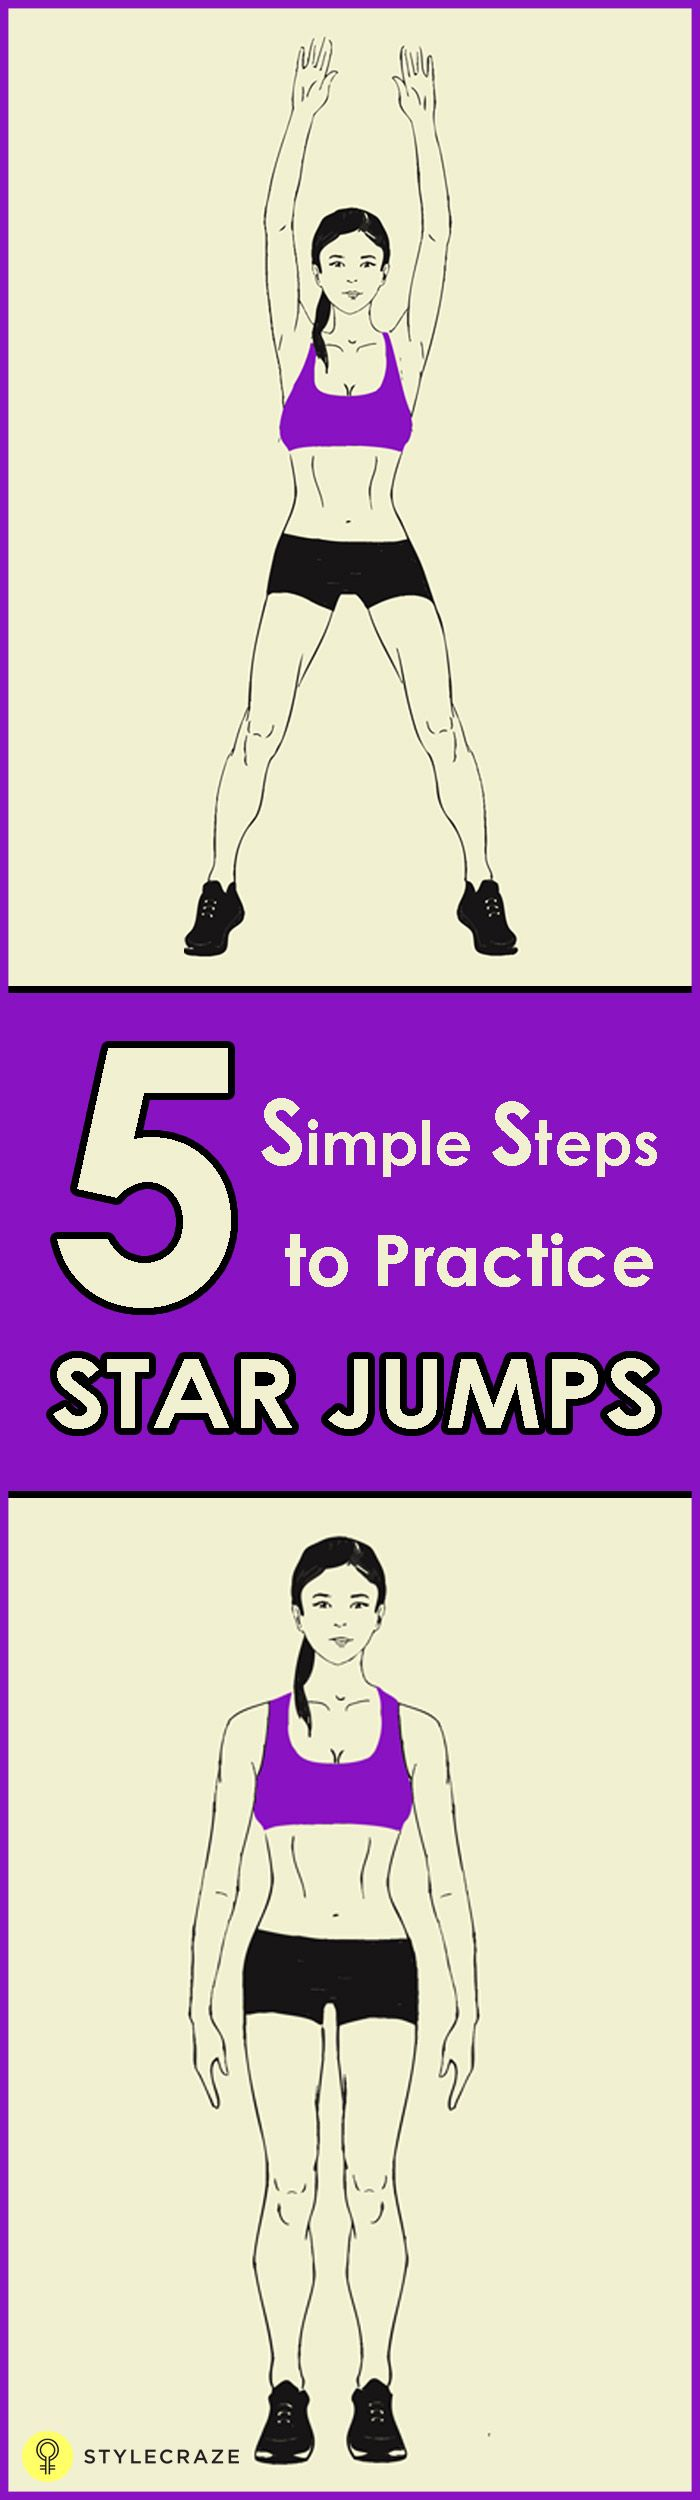 Star jumps, or jumping jacks is a wonderful exercise routine and has great benefits. Would you like to know how to do star jumps and the benefits it offers? Go ahead and read! #fitness